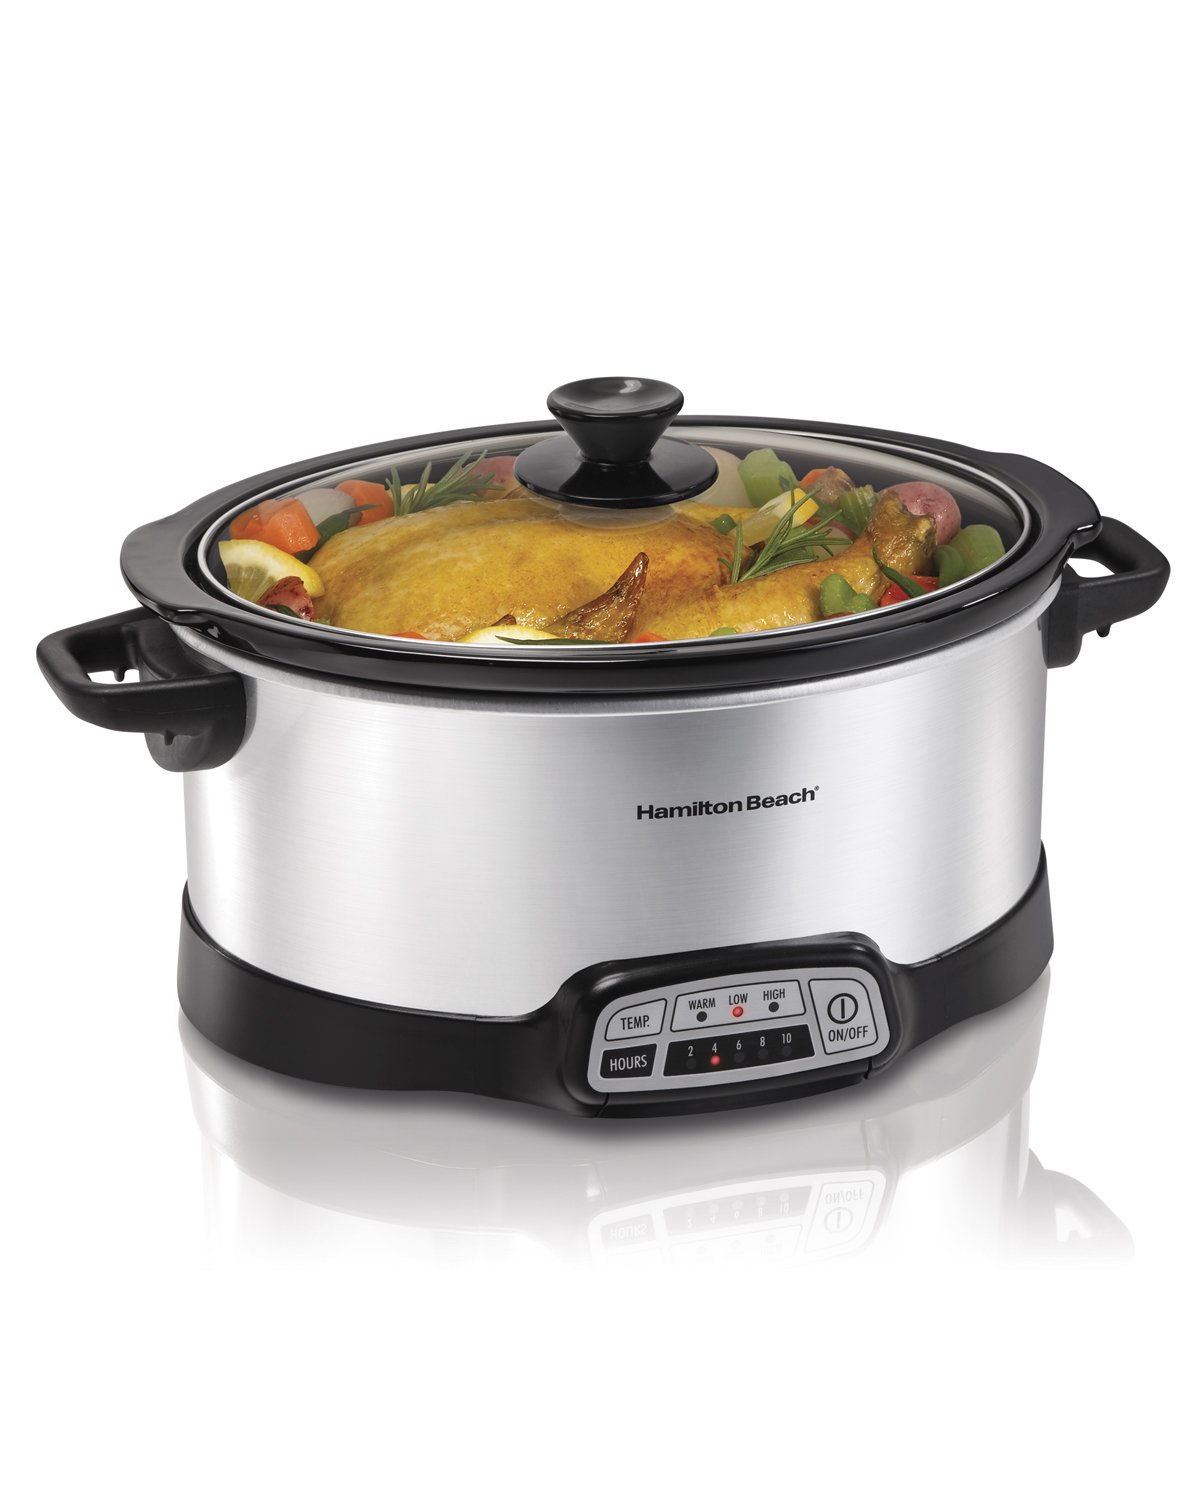 Hamilton Beach Programmable Stay or Go Slow Cooker Ingram Micro CE 33466